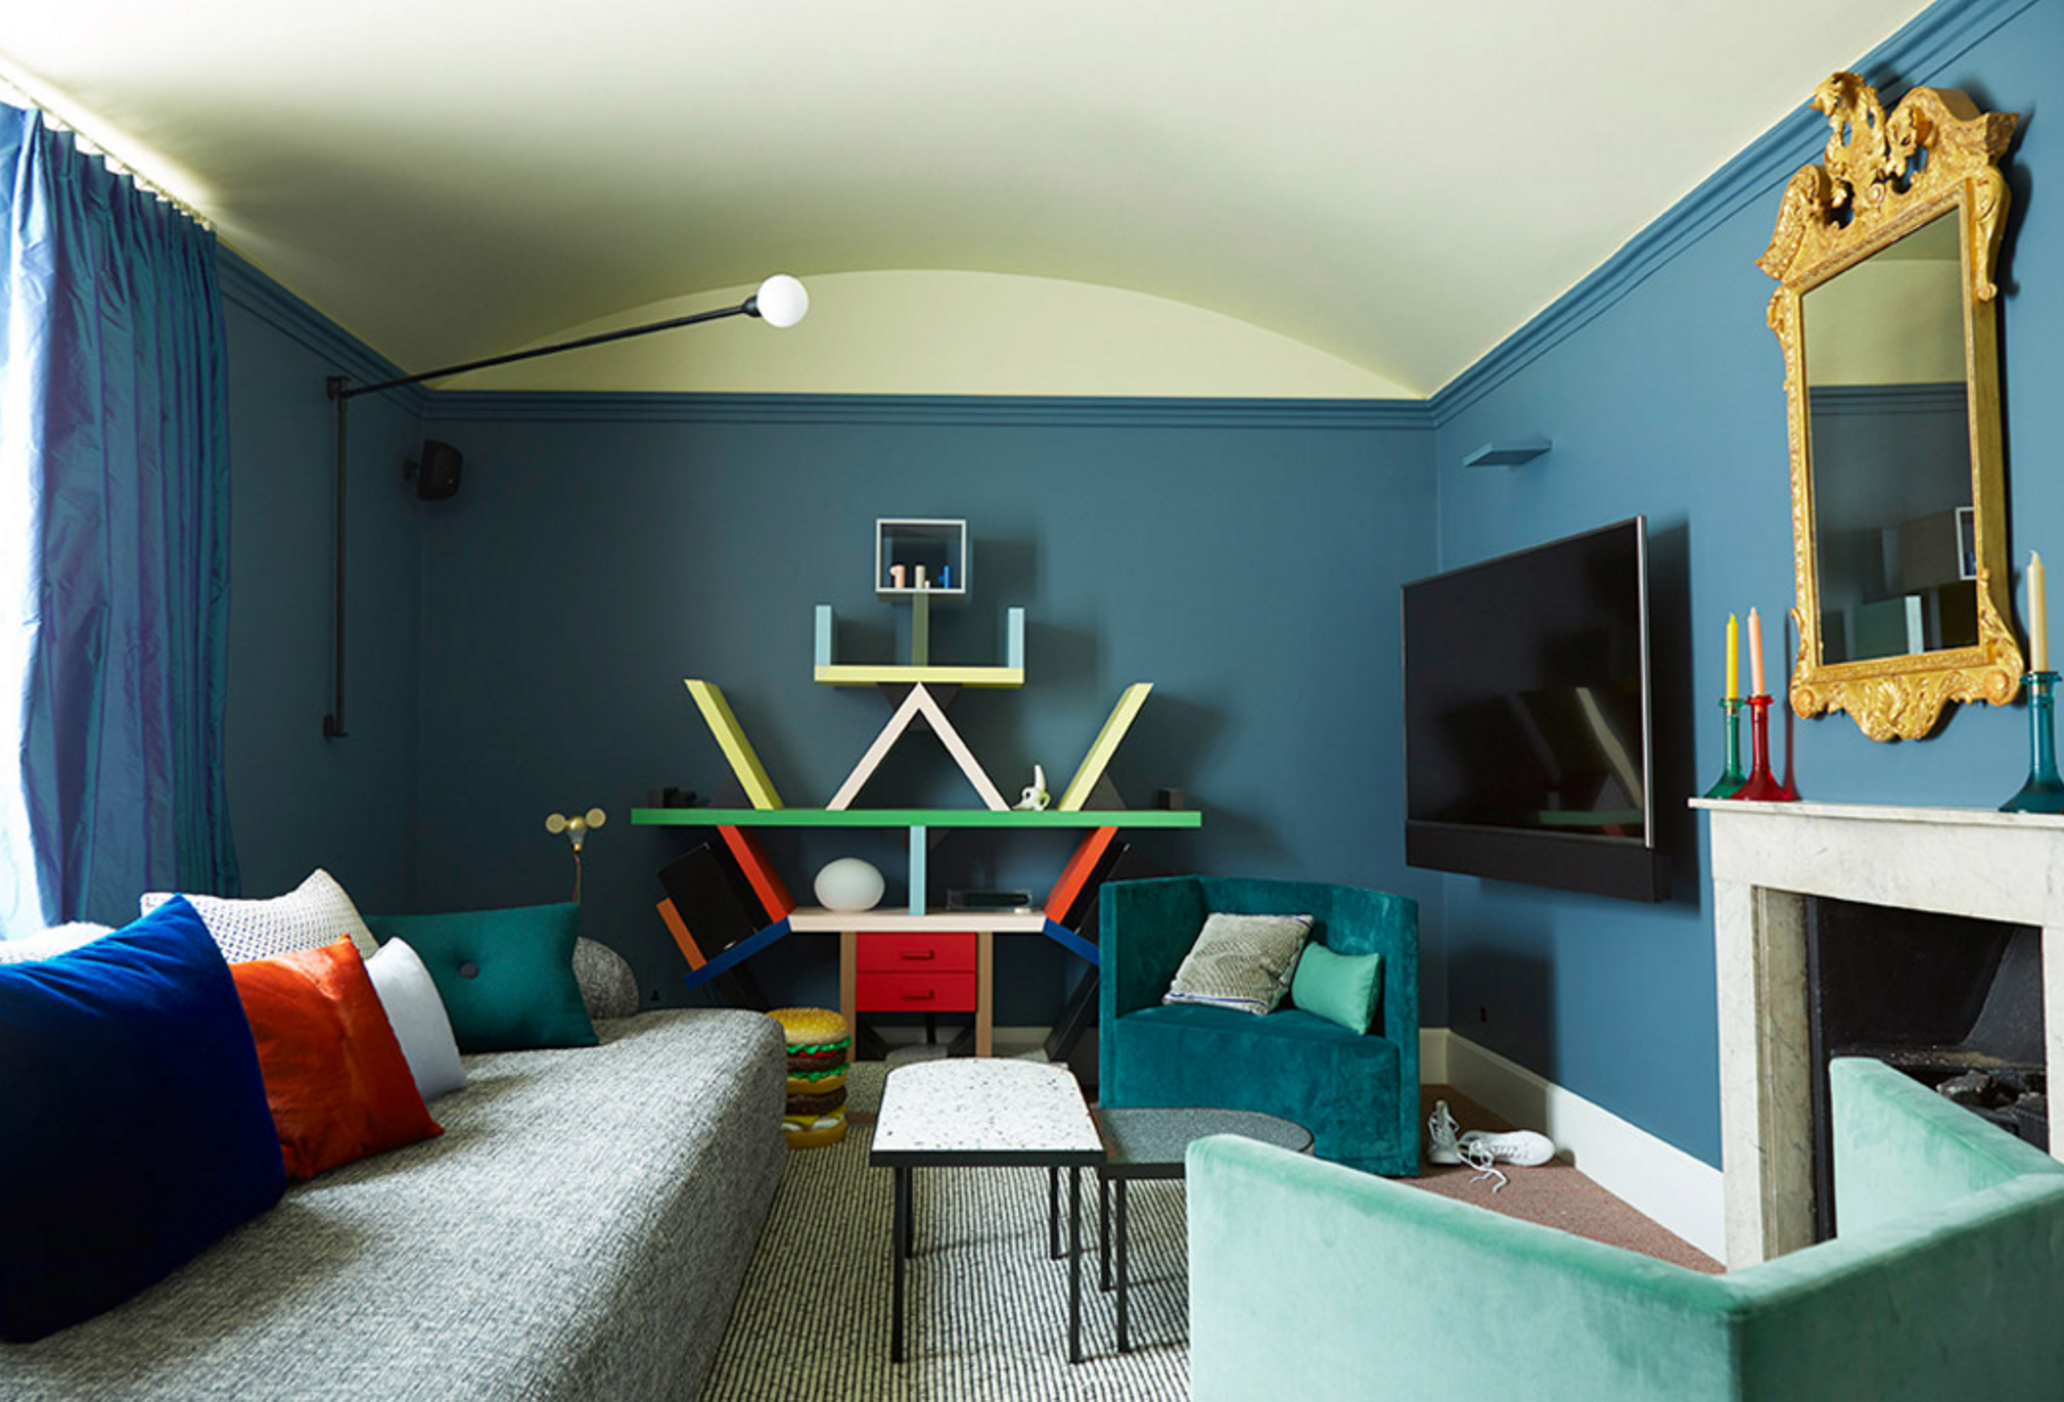 Image of a room by Tom Bartlett and Waldo Works interior design